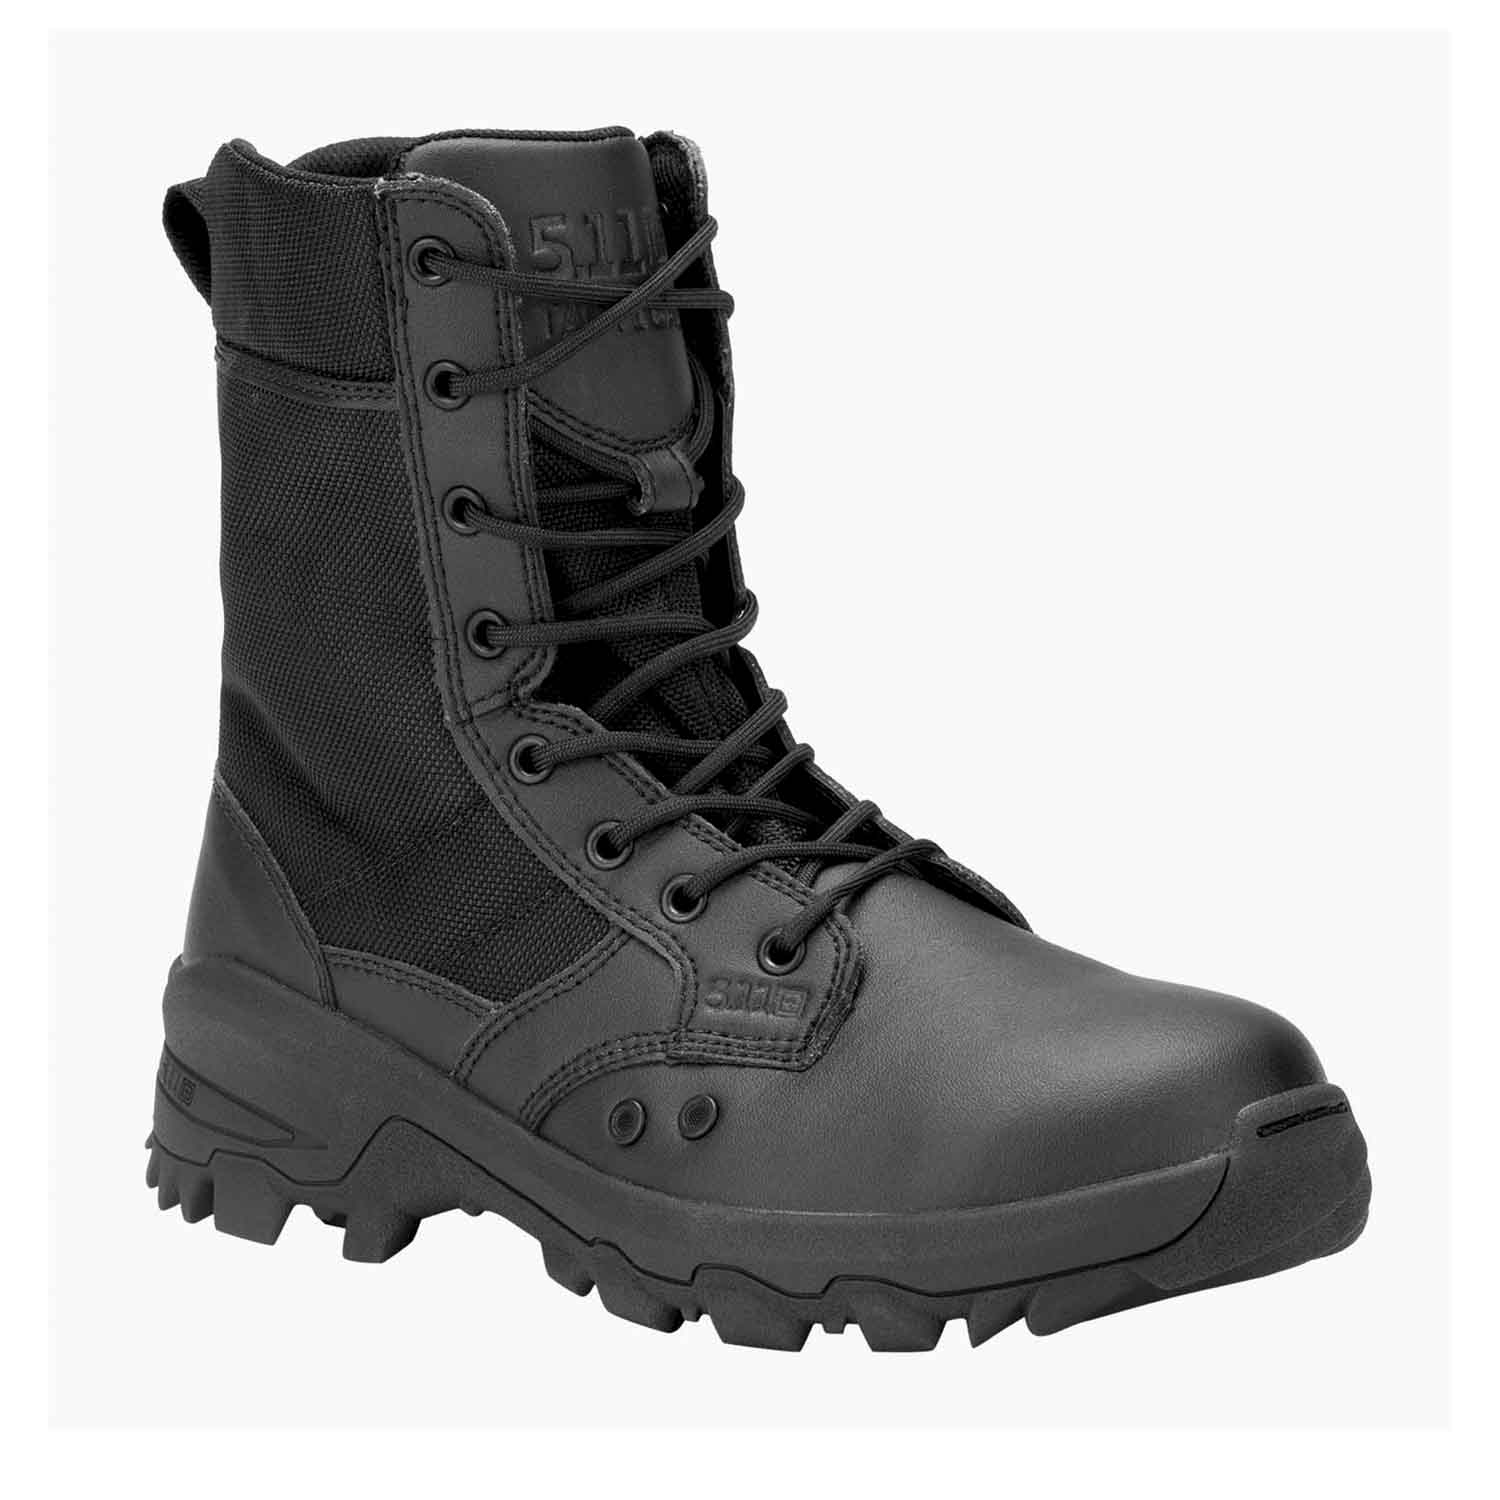 5.11 Tactical Jungle Road Speed 3.0 Boots